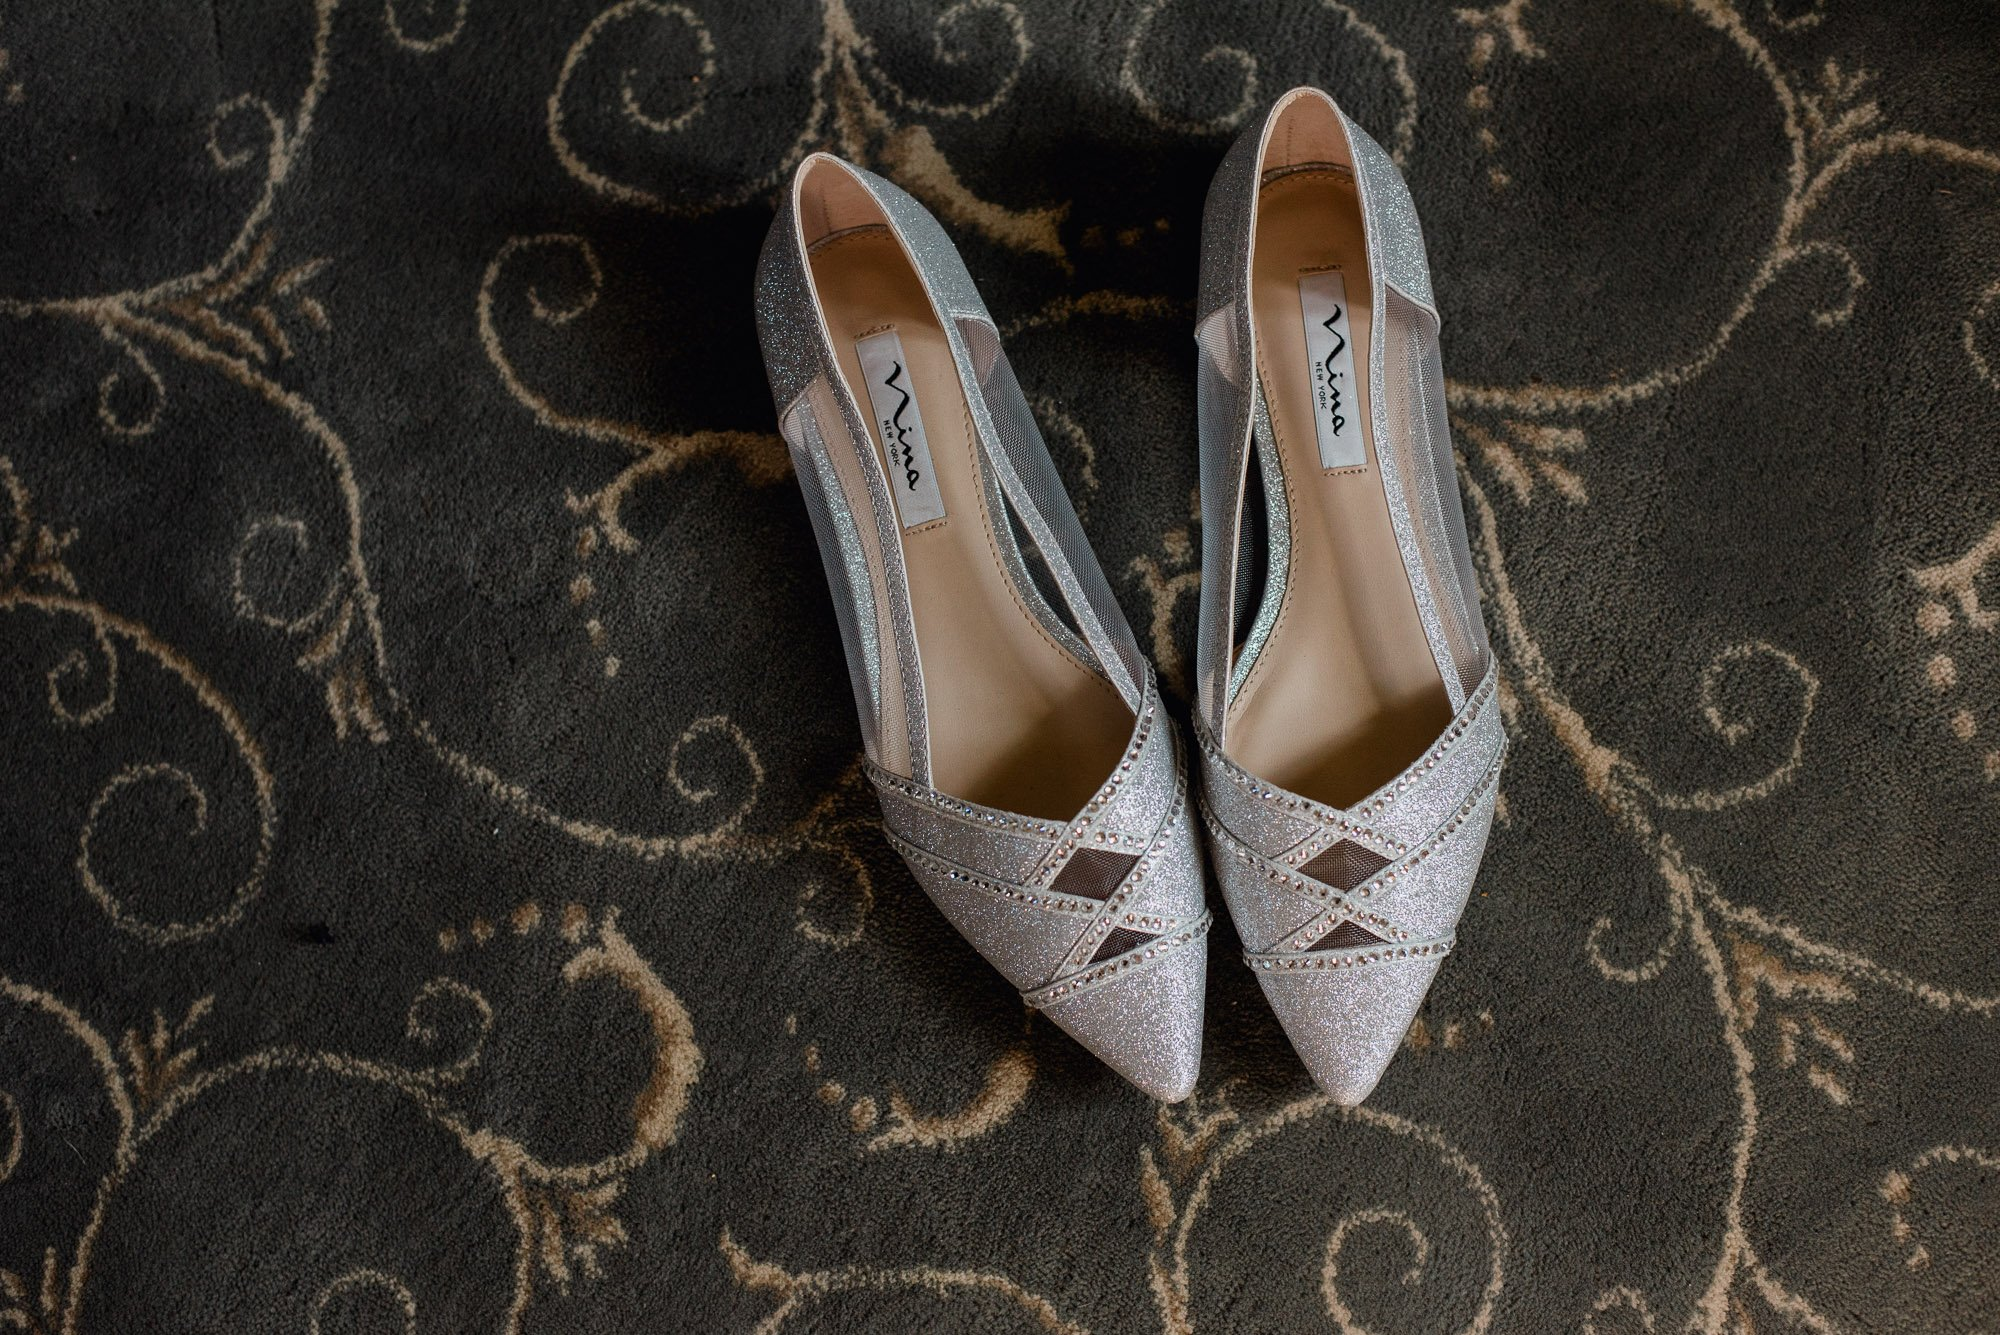 silver bridal shoes at round top wedding, silver nina wedding shoes, wedding detail photographs